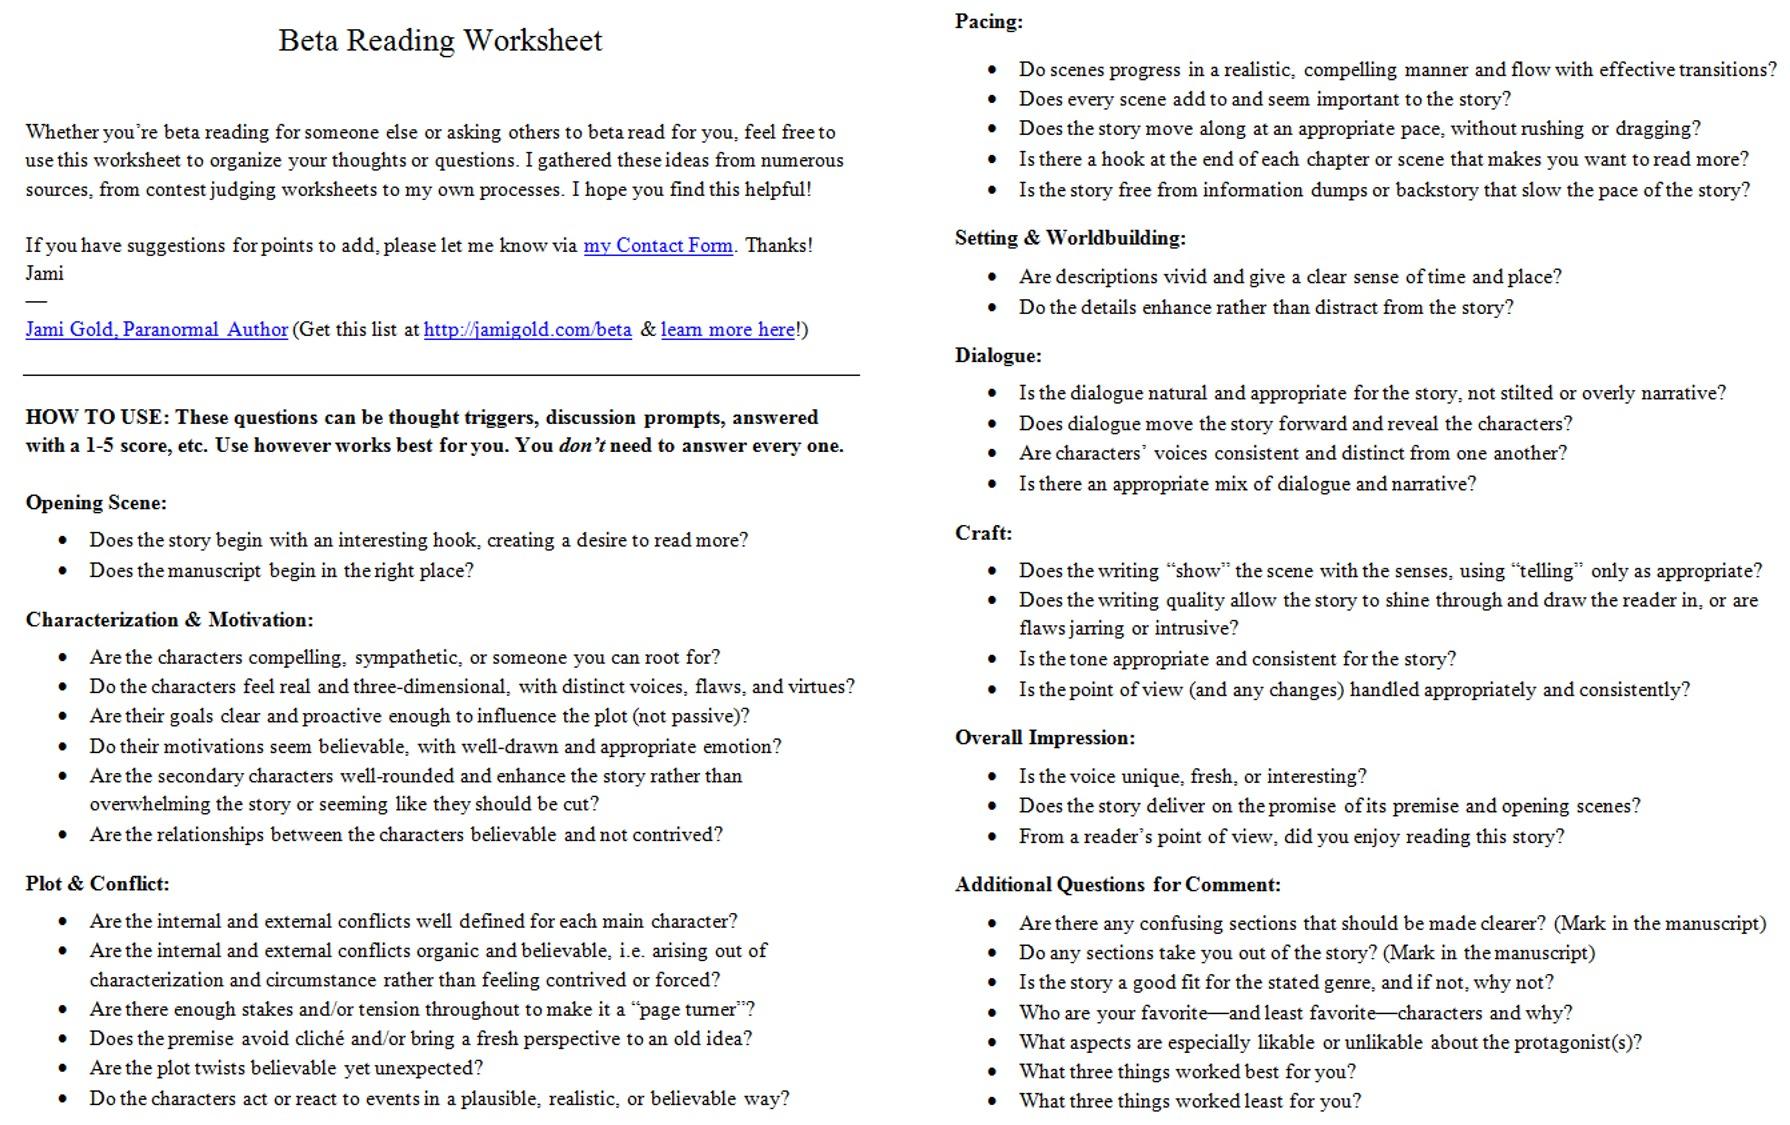 Proatmealus  Surprising Worksheets For Writers  Jami Gold Paranormal Author With Hot Screen Shot Of The Twopage Beta Reading Worksheet With Delightful Two Way Tables Worksheets Also Ocean Life Worksheets In Addition Practice Cursive Worksheet And Ordinal Position Worksheets As Well As Geosphere Worksheet Additionally Write Numbers In Words Worksheet From Jamigoldcom With Proatmealus  Hot Worksheets For Writers  Jami Gold Paranormal Author With Delightful Screen Shot Of The Twopage Beta Reading Worksheet And Surprising Two Way Tables Worksheets Also Ocean Life Worksheets In Addition Practice Cursive Worksheet From Jamigoldcom